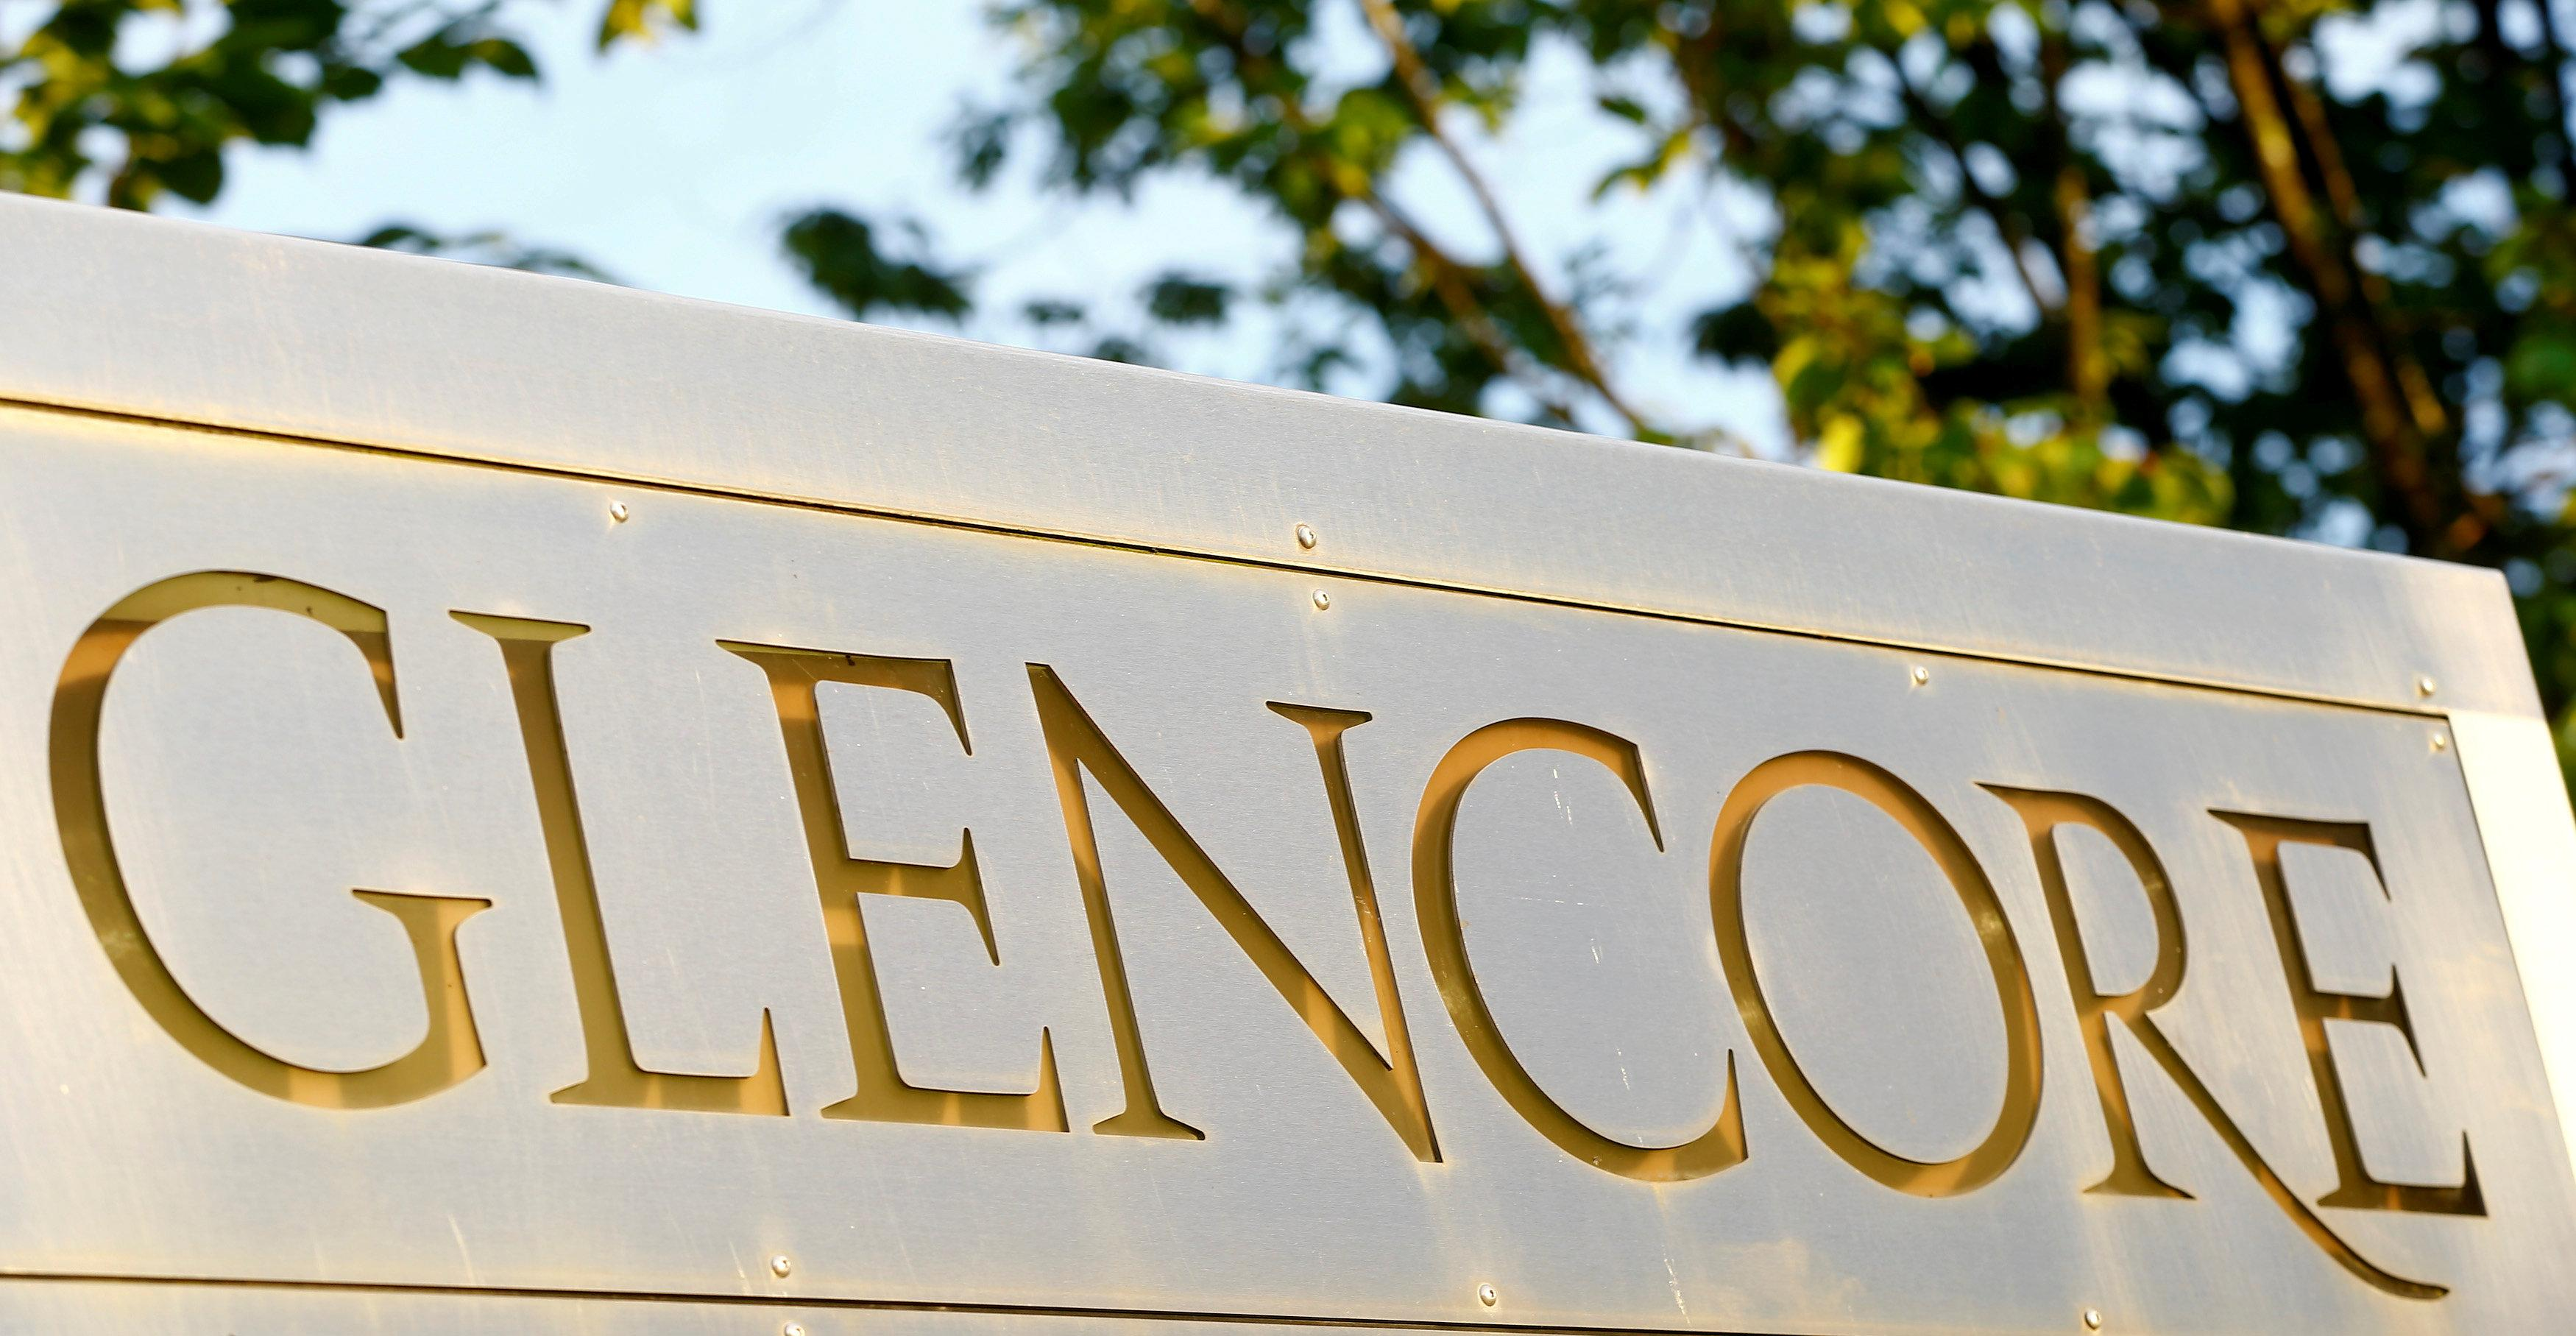 The logo of commodities trader Glencore is pictured in front of the company's headquarters in Baar, Switzerland, July 18, 2017.  Arnd Wiegmann